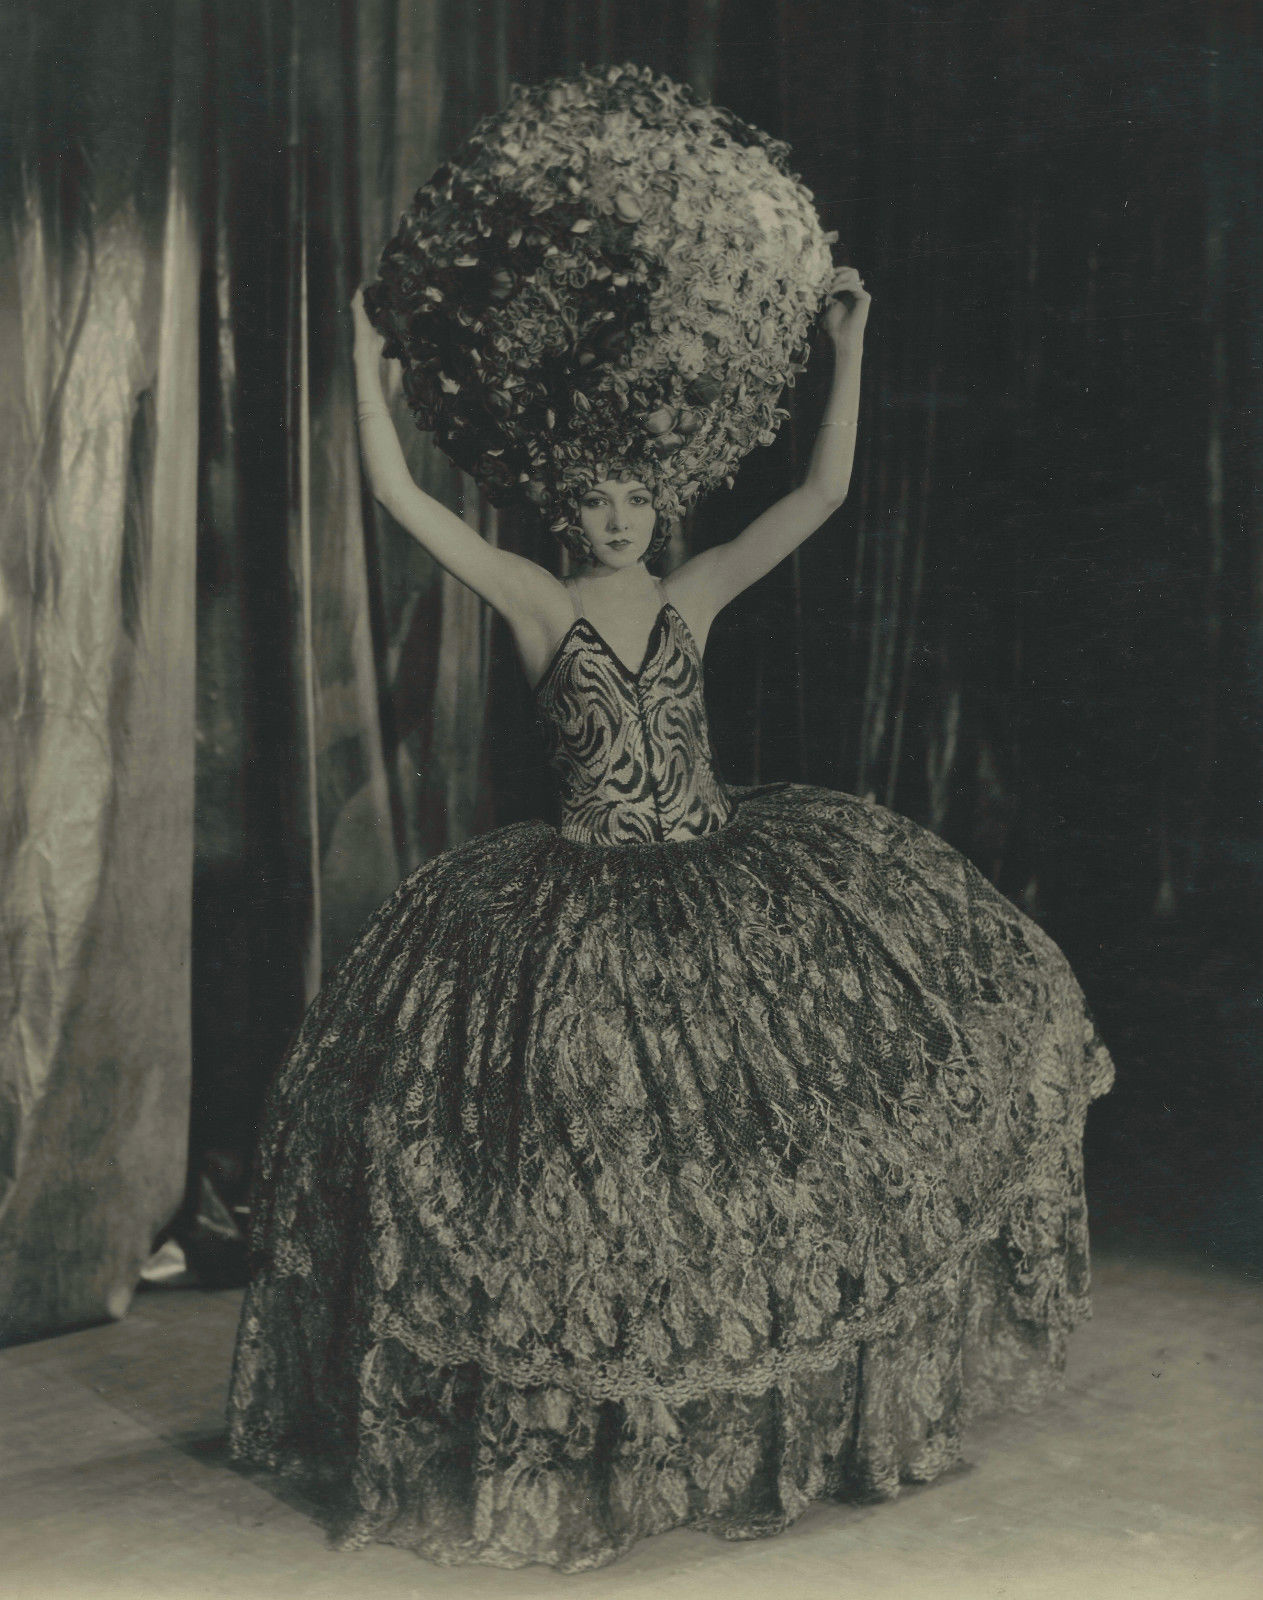 Edward Bower Hesser Grace Kay White for the Geenwich village Follies christmas fund benefit, 1929